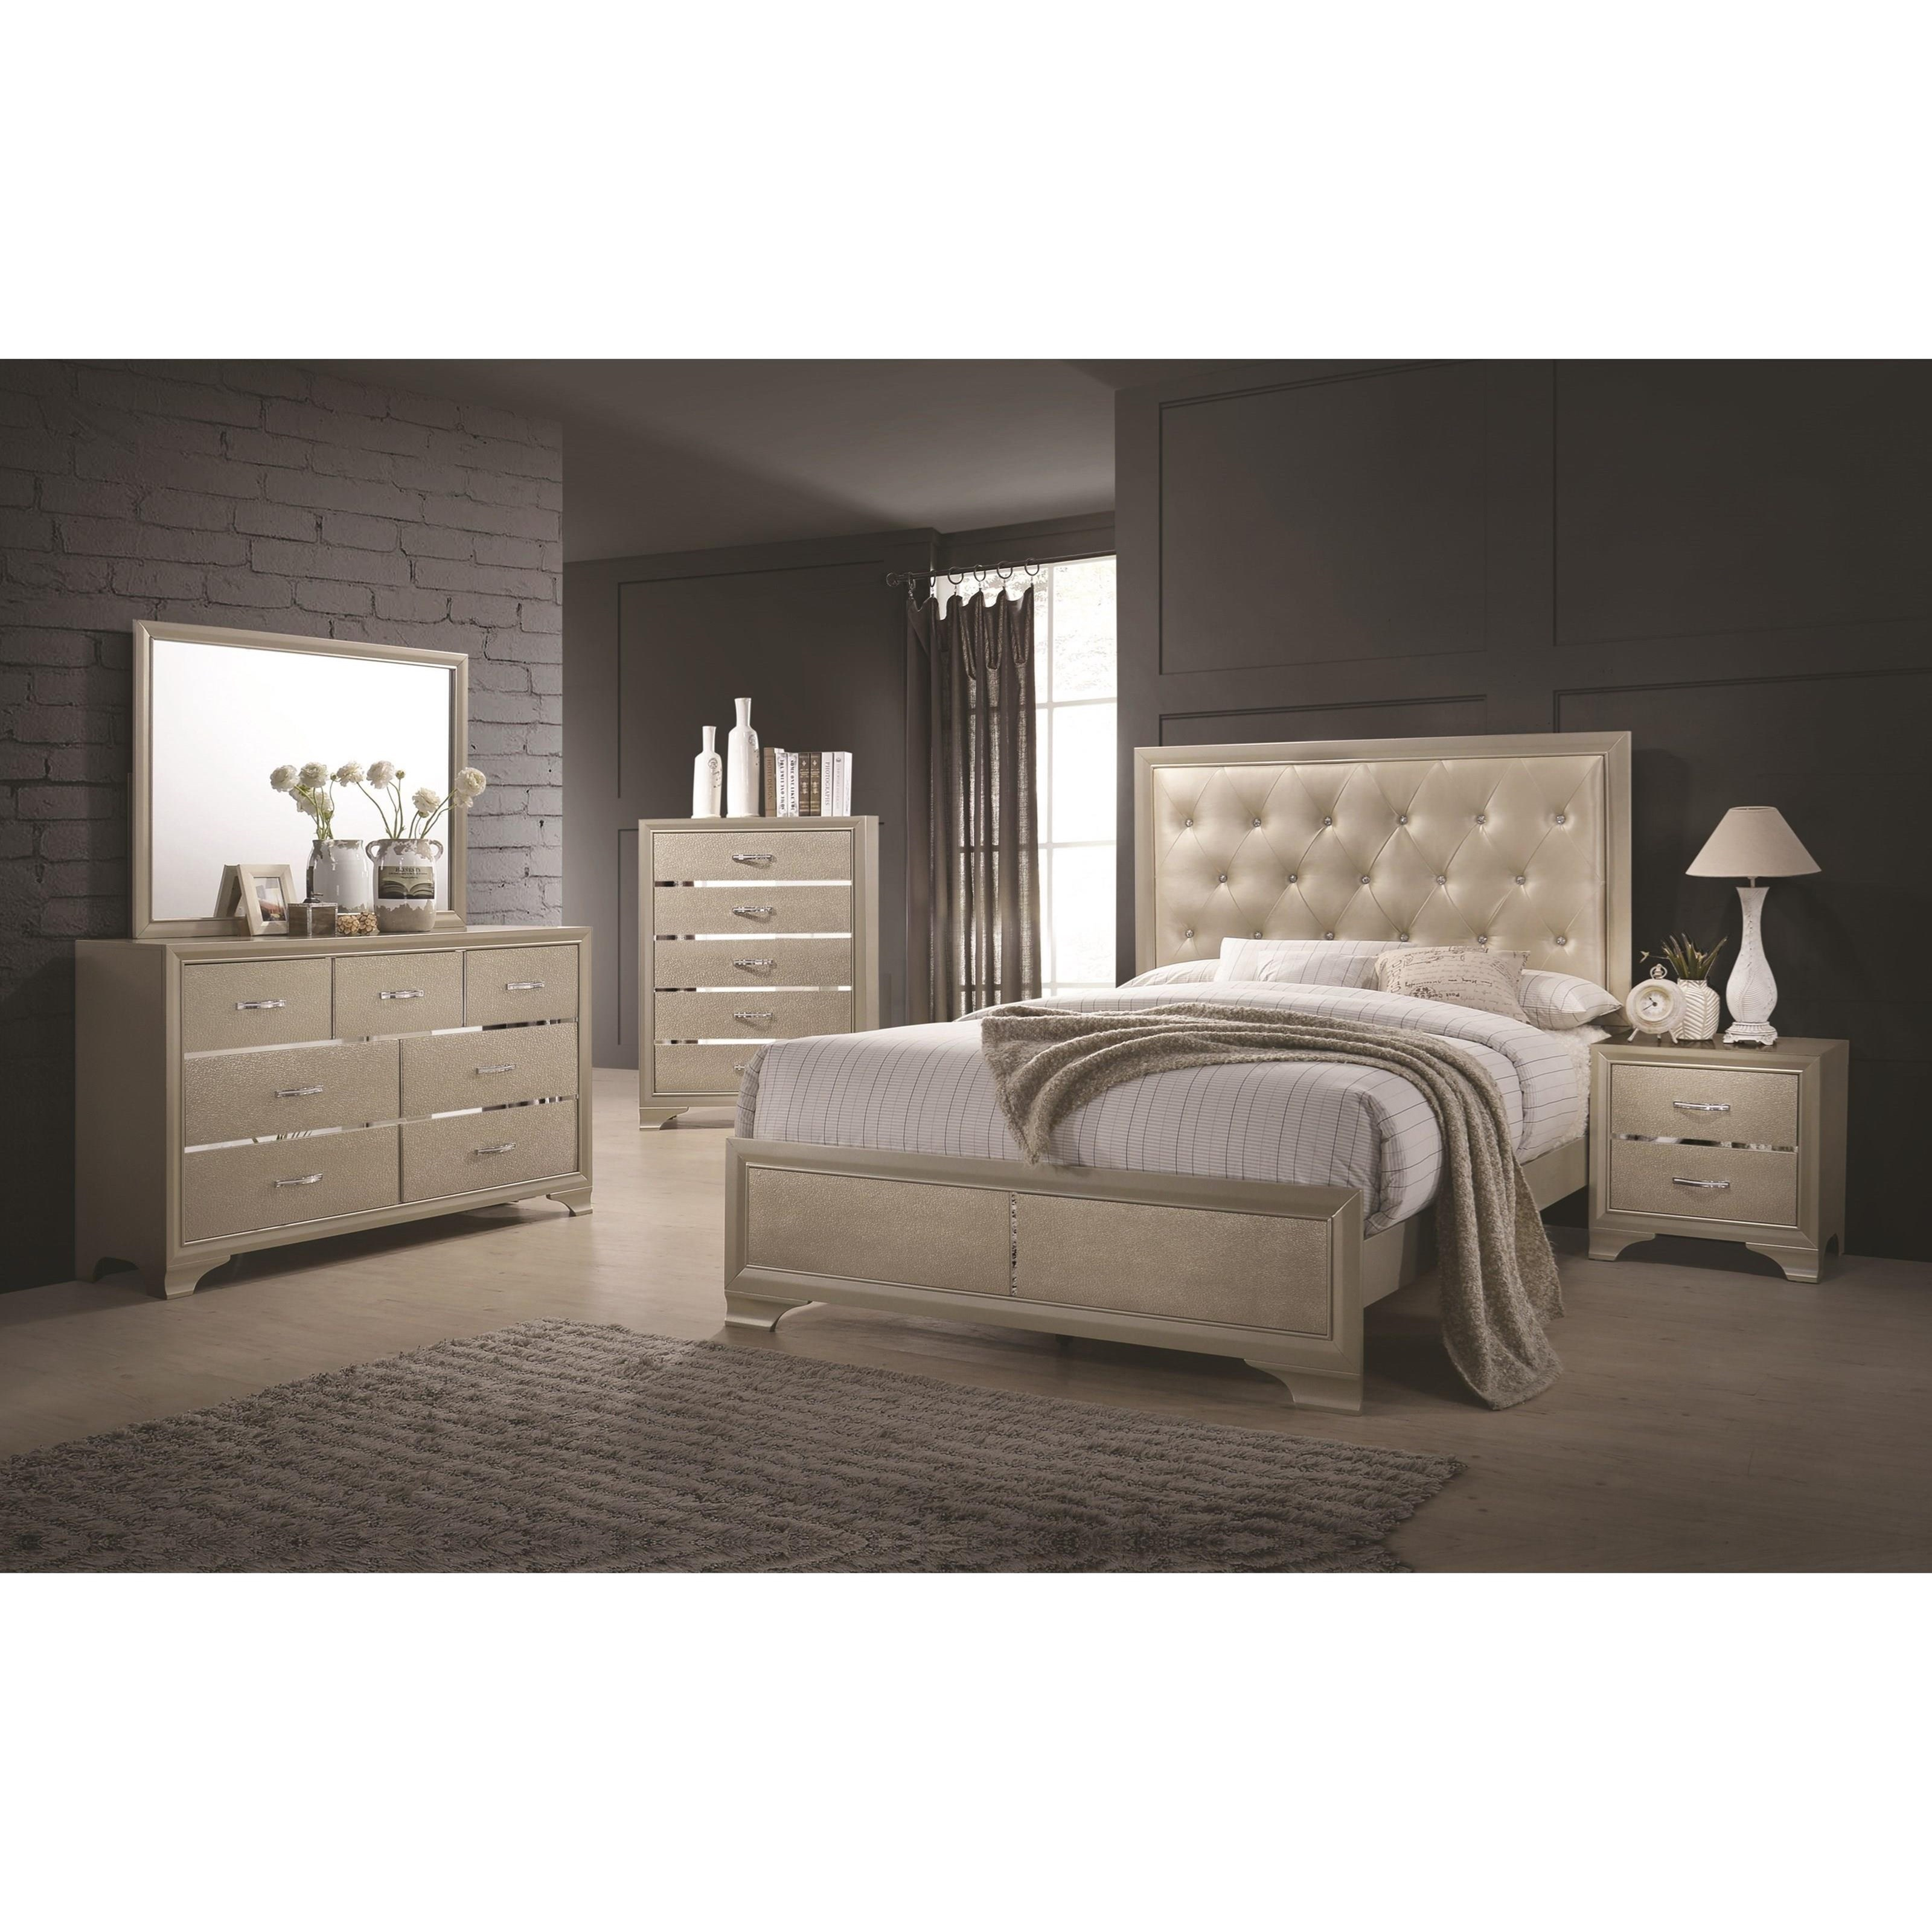 Beaumont seven drawer dresser with felt lined top drawers for Q furniture beaumont